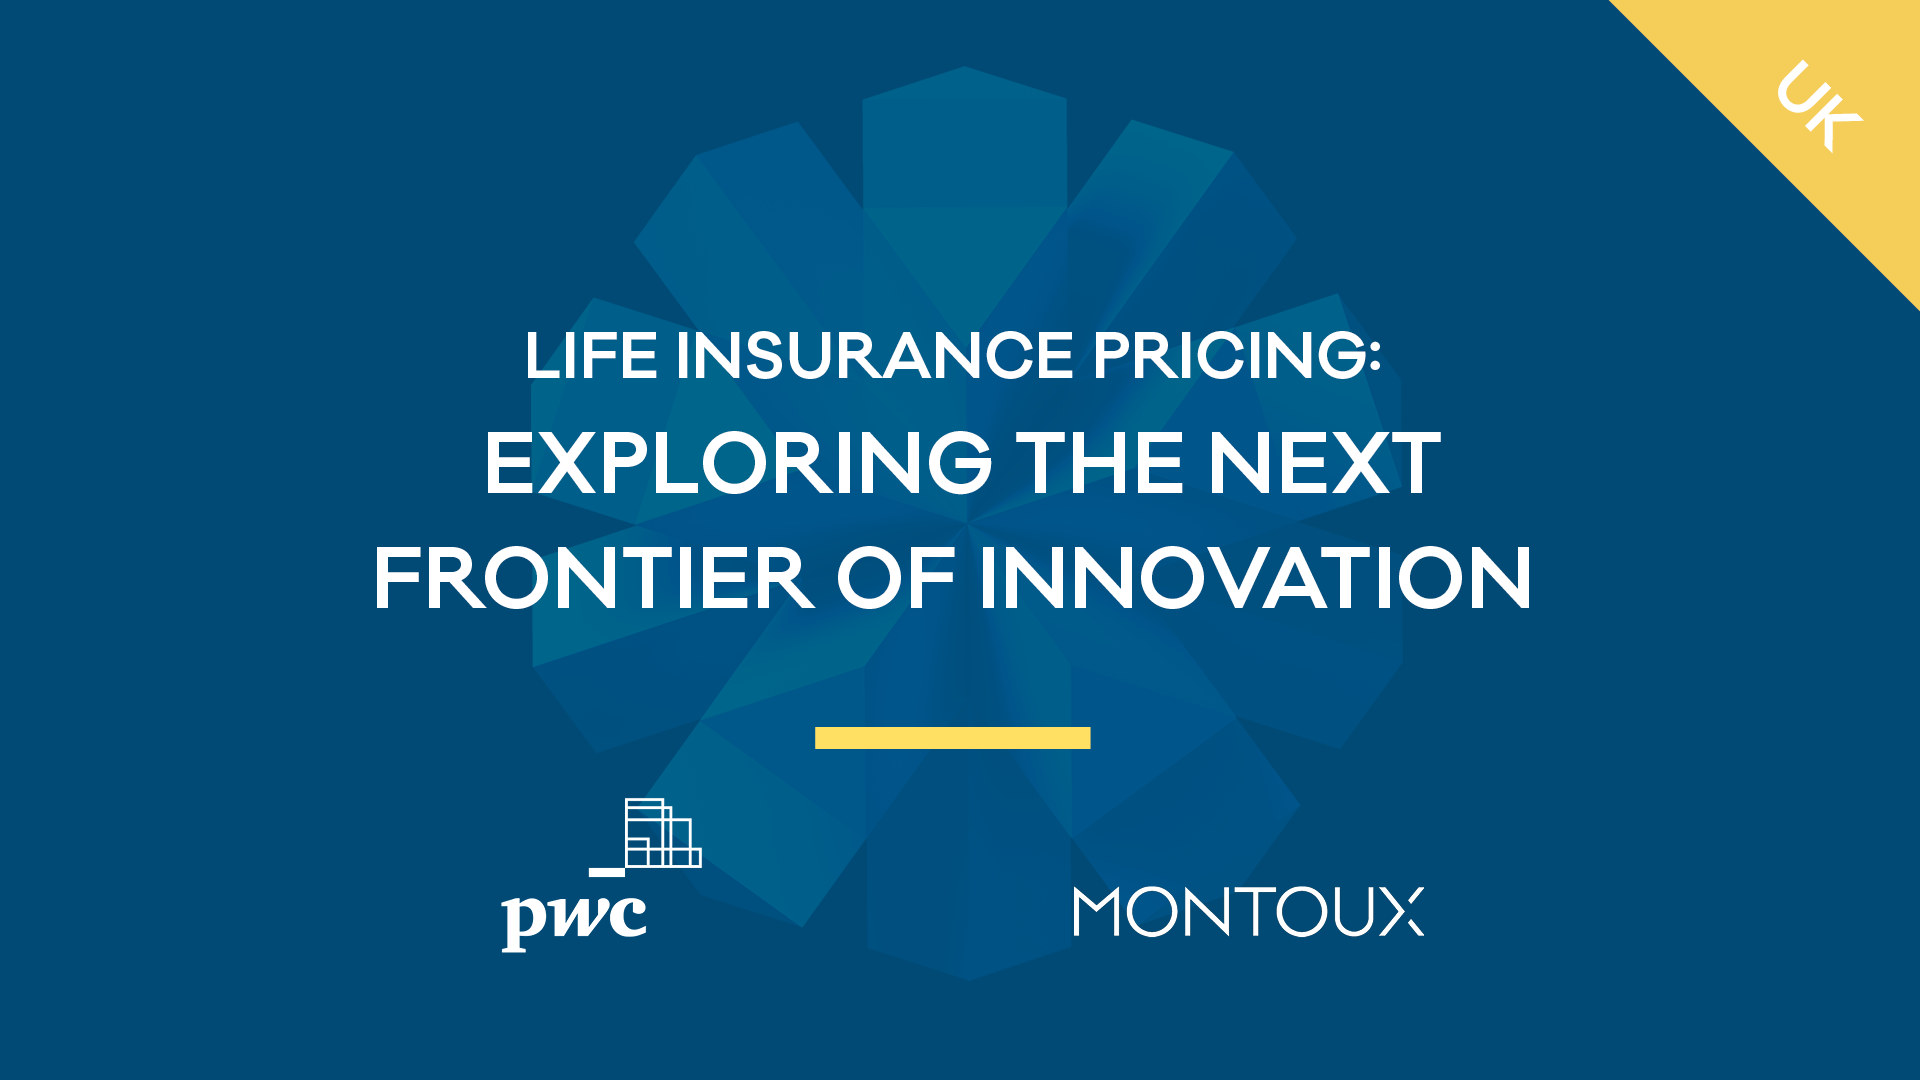 Life insurance pricing:Exploring the next frontier of innovation